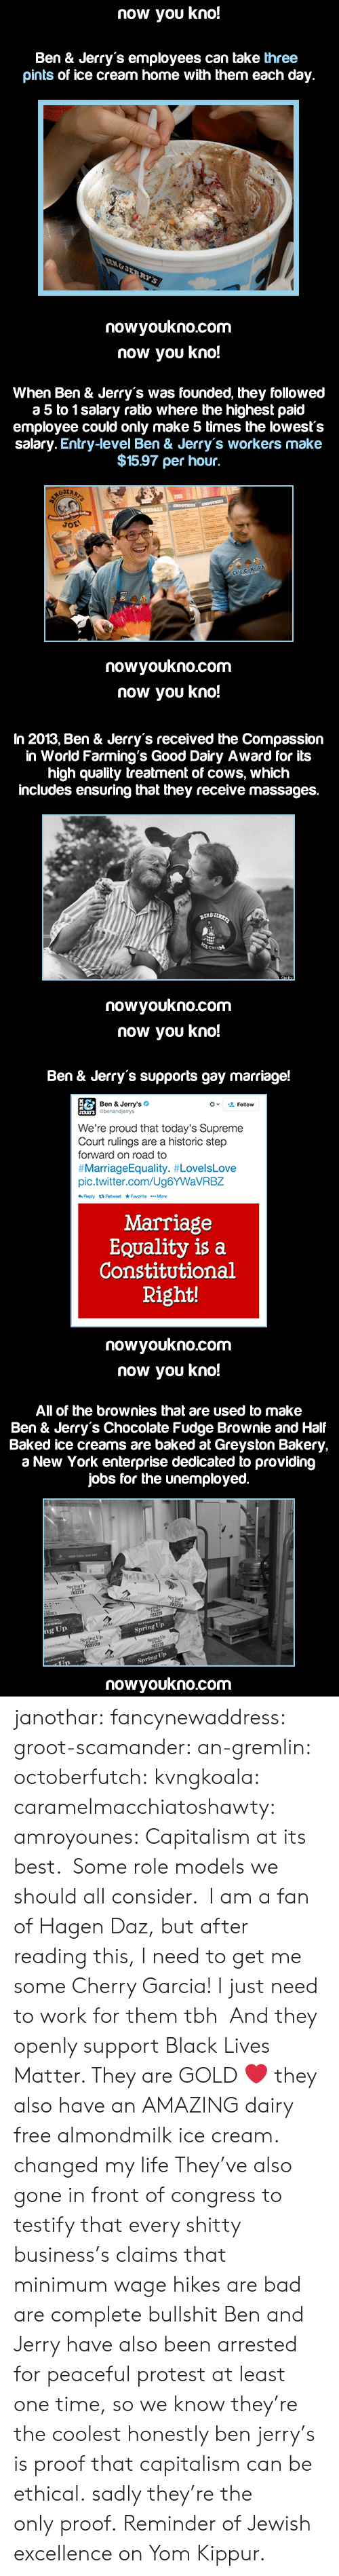 Gay Marriage: now you kno!  Ben & Jerry's employees can take three  pints of ice cream home with them each day.  nowyoukno.com   now you kno!  When Ben & Jerry's was founded, they followed  a 5 to 1 salary ratio where the highest paid  employee could only make 5 times the lowests  salary. Entry-level Ben & Jerry's workers make  $15.97 per hour.  JER  nowyoukno.com   now you kno!  In 2013, Ben & Jerry's received the Compassion  in World Farming's Good Dairy Award for its  high quality treatment of cows, which  includes ensuring that they receive massages.  nowyoukno.com   now you kno!  Ben & Jerry's supports gay marriage!  Ben & Jerry's  Gbenanderys  '오 Follow  We're proud that today's Supreme  Court rulings are a historic step  forward on road to  #MarriageEquality. #LovelsLove  pic.twitter.com/Ug6YWaVRBZ  Marriage  EQuality is a  Constitutional  Right!  nowyoukno.com   now you kno!  All of the brownies that are used to make  Ben & Jerry's Chocolate Fudge Brownie and Half  Baked ice creams are baked at Greyston Bakery,  a New York enterprise dedicated to providing  jobs for the unemployed.  ng Up  Spring Up  Spring Up  nowyoukno.com janothar: fancynewaddress:  groot-scamander:  an-gremlin:  octoberfutch:  kvngkoala:  caramelmacchiatoshawty:  amroyounes:  Capitalism at its best. Some role models we should all consider. I am a fan of Hagen Daz, but after reading this, I need to get me some Cherry Garcia!  I just need to work for them tbh  And they openly support Black Lives Matter. They are GOLD ❤️  they also have an AMAZING dairy free almondmilk ice cream. changed my life  They've also gone in front of congress to testify that every shitty business's claims that minimum wage hikes are bad are complete bullshit   Ben and Jerry have also been arrested for peaceful protest at least one time, so we know they're the coolest  honestly ben  jerry's is proof that capitalism can be ethical. sadly they're the onlyproof.  Reminder of Jewish excellence on Yom Kippur.